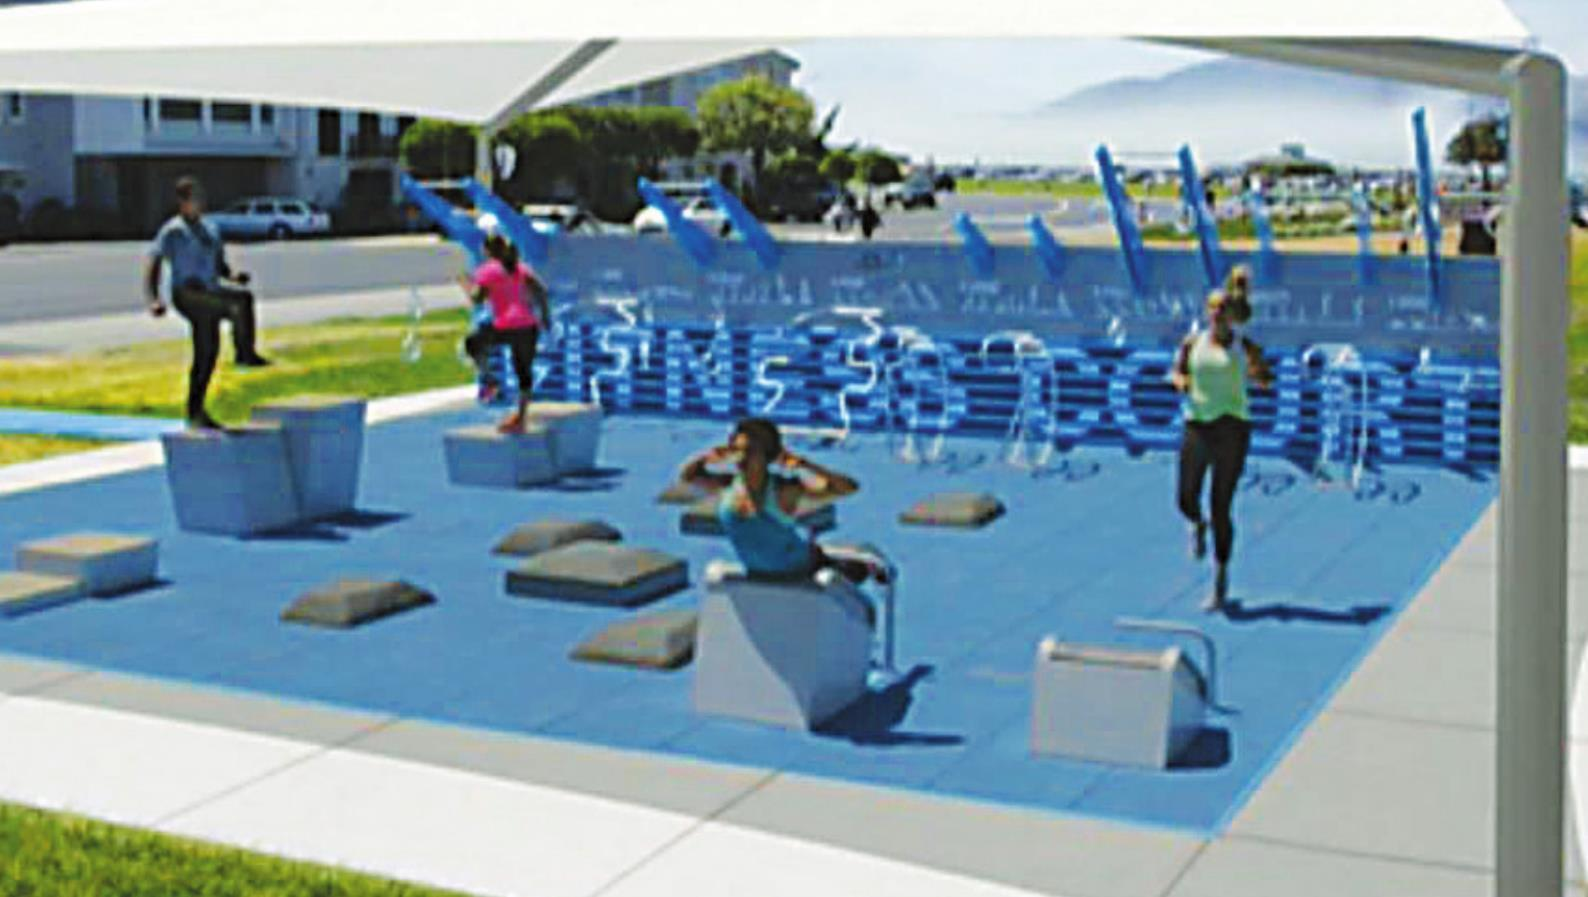 City of Kyle receives $25,000 grant toward an outdoor fitness court